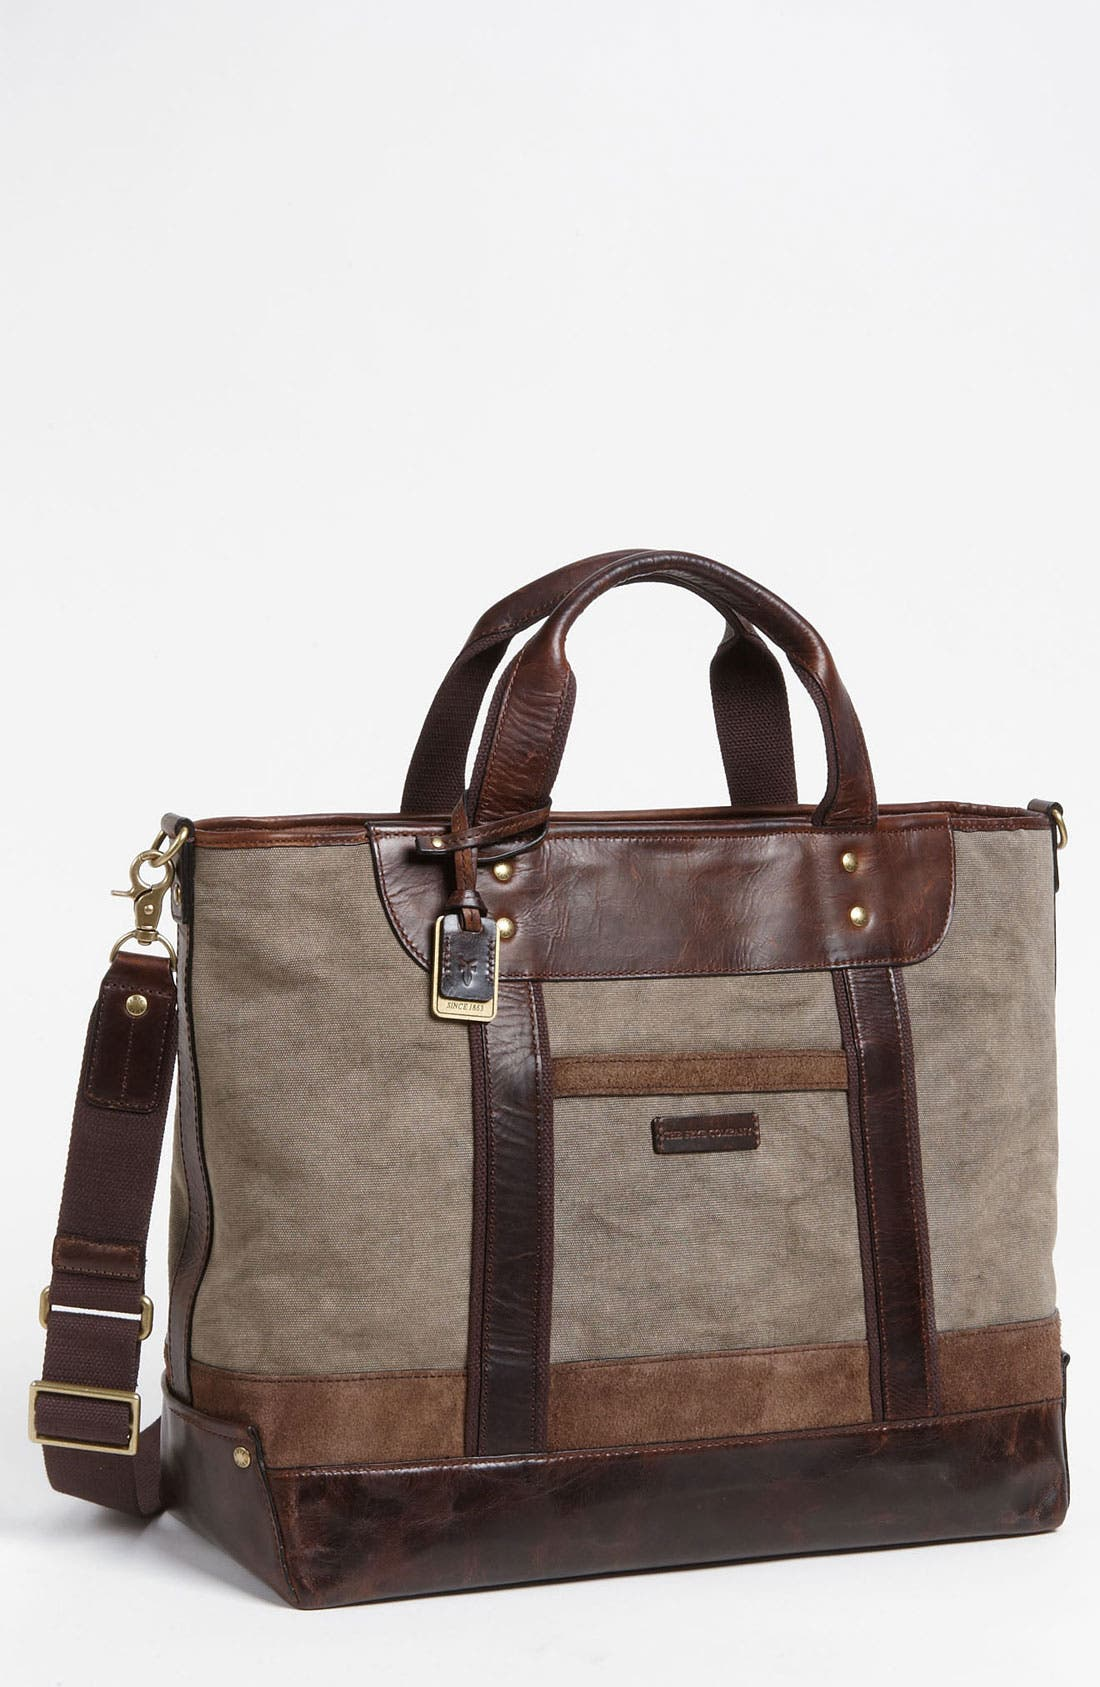 Main Image - Frye 'Harvey' Tote Bag